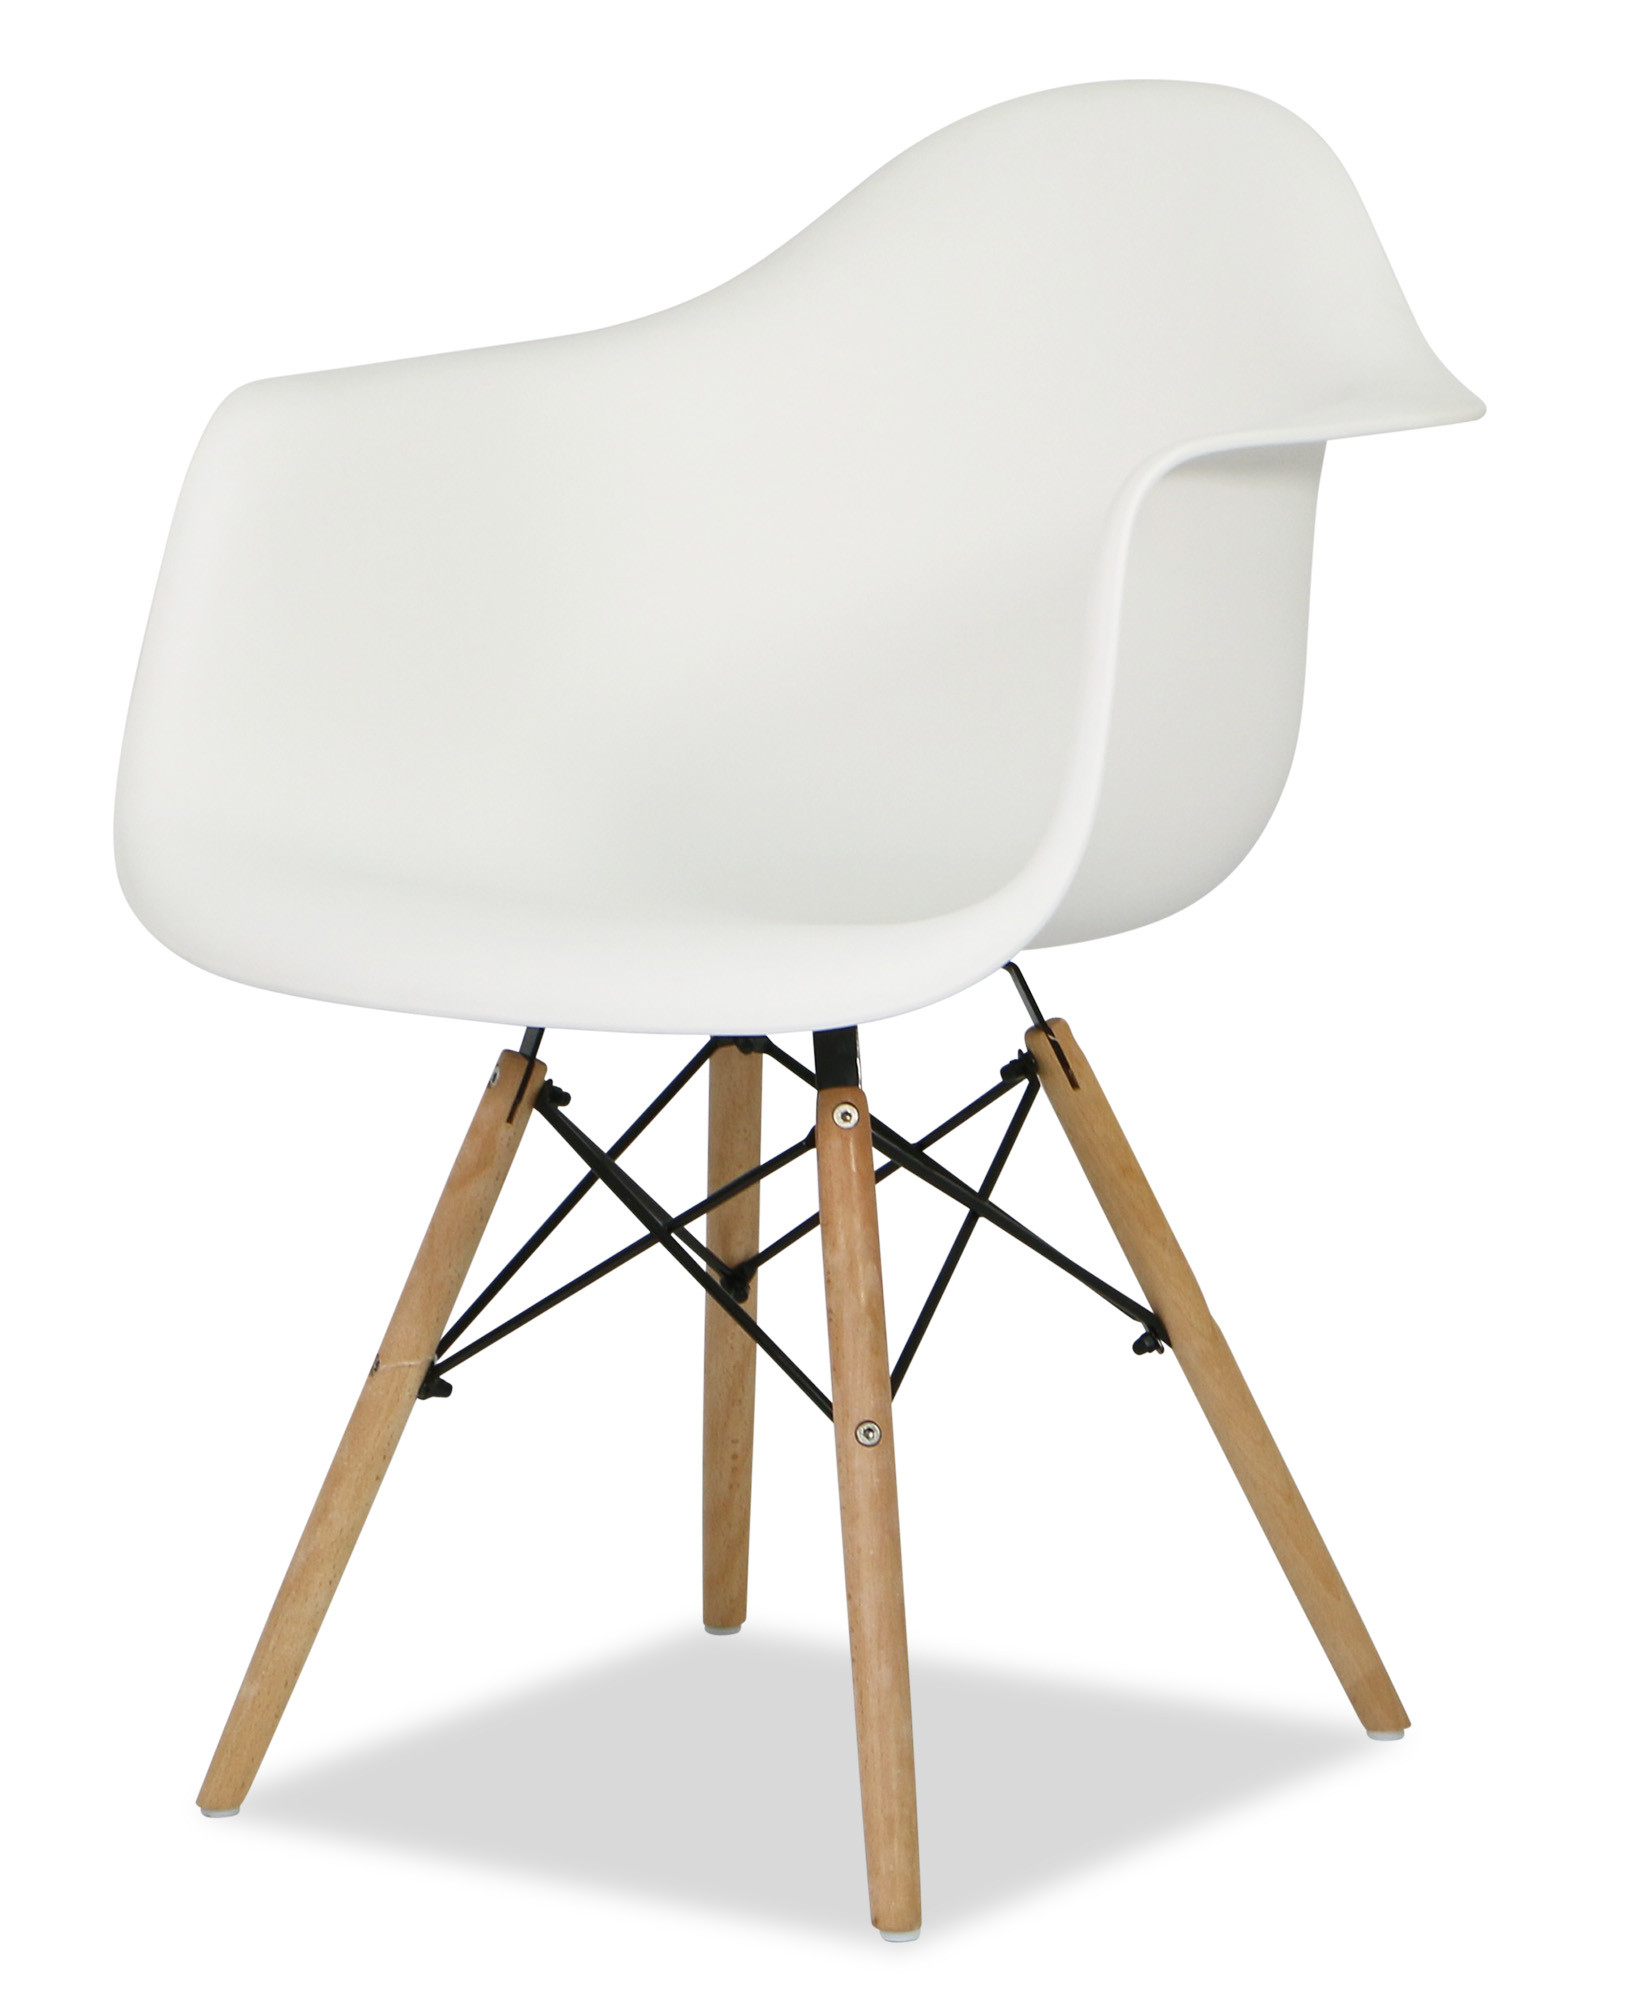 Eames replica designer arm chair white armchairs for Imitation designer chairs